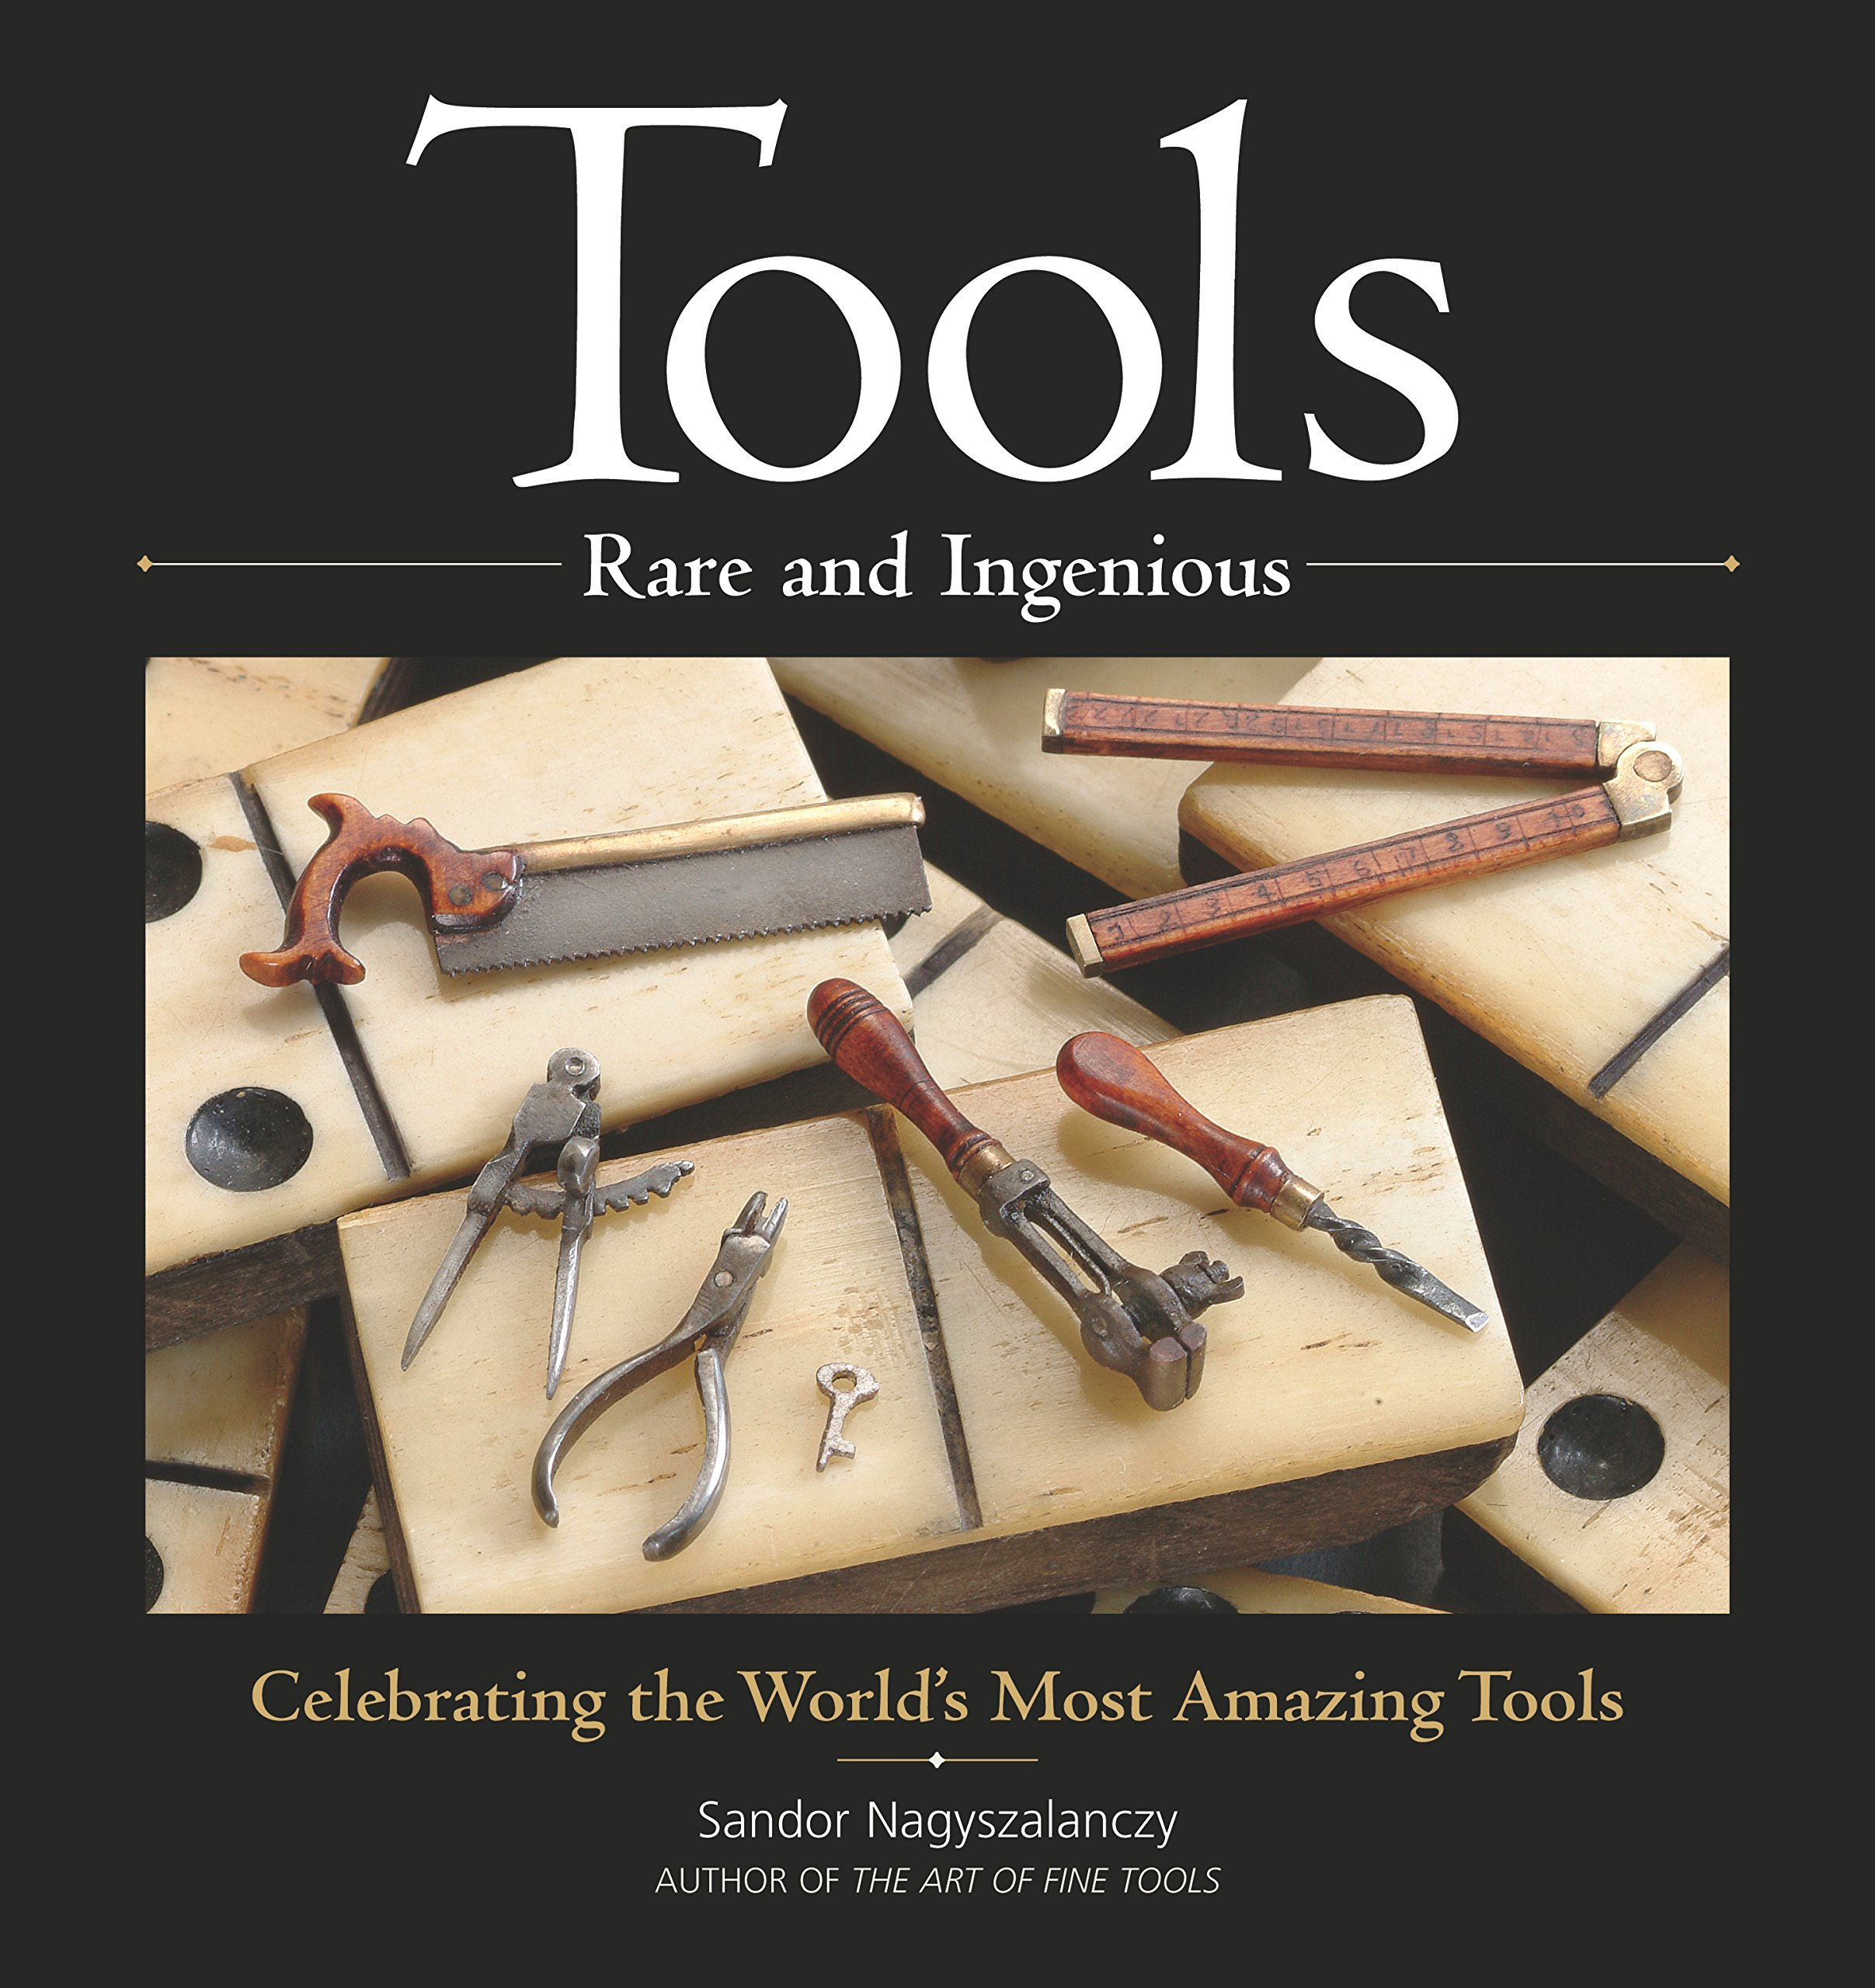 tools-rare-and-ingenious-celebrating-the-world-s-most-amazing-tools